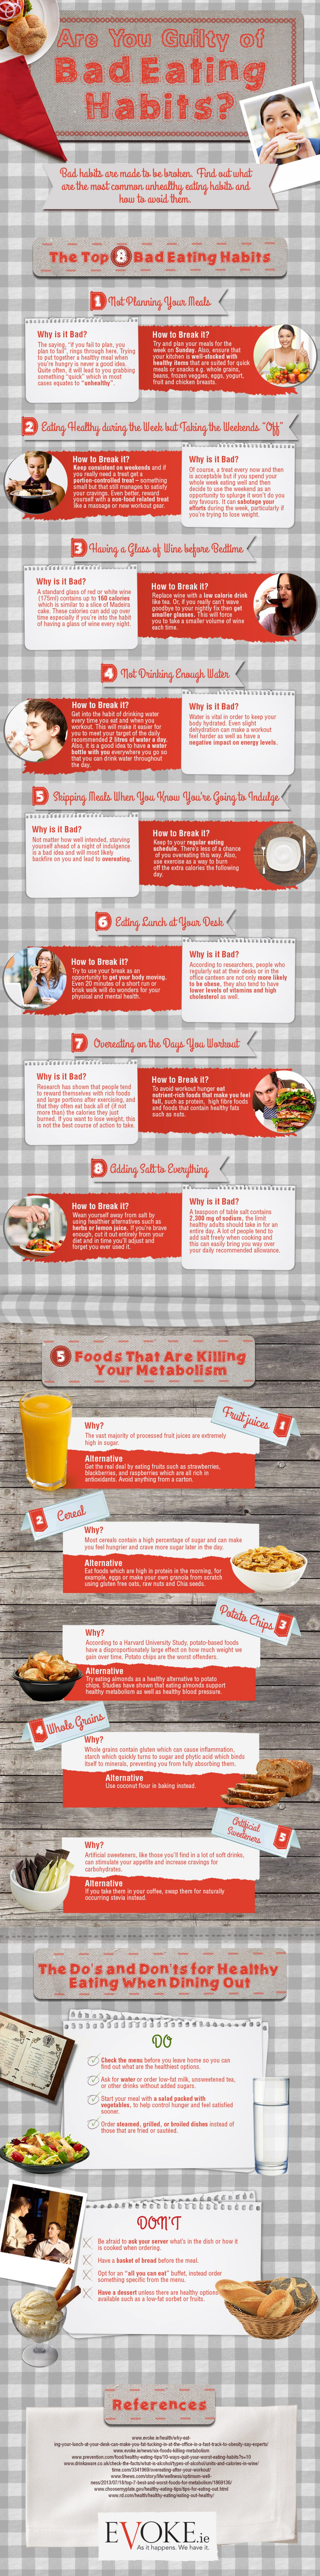 Are You Guilty of Bad Eating Habits?